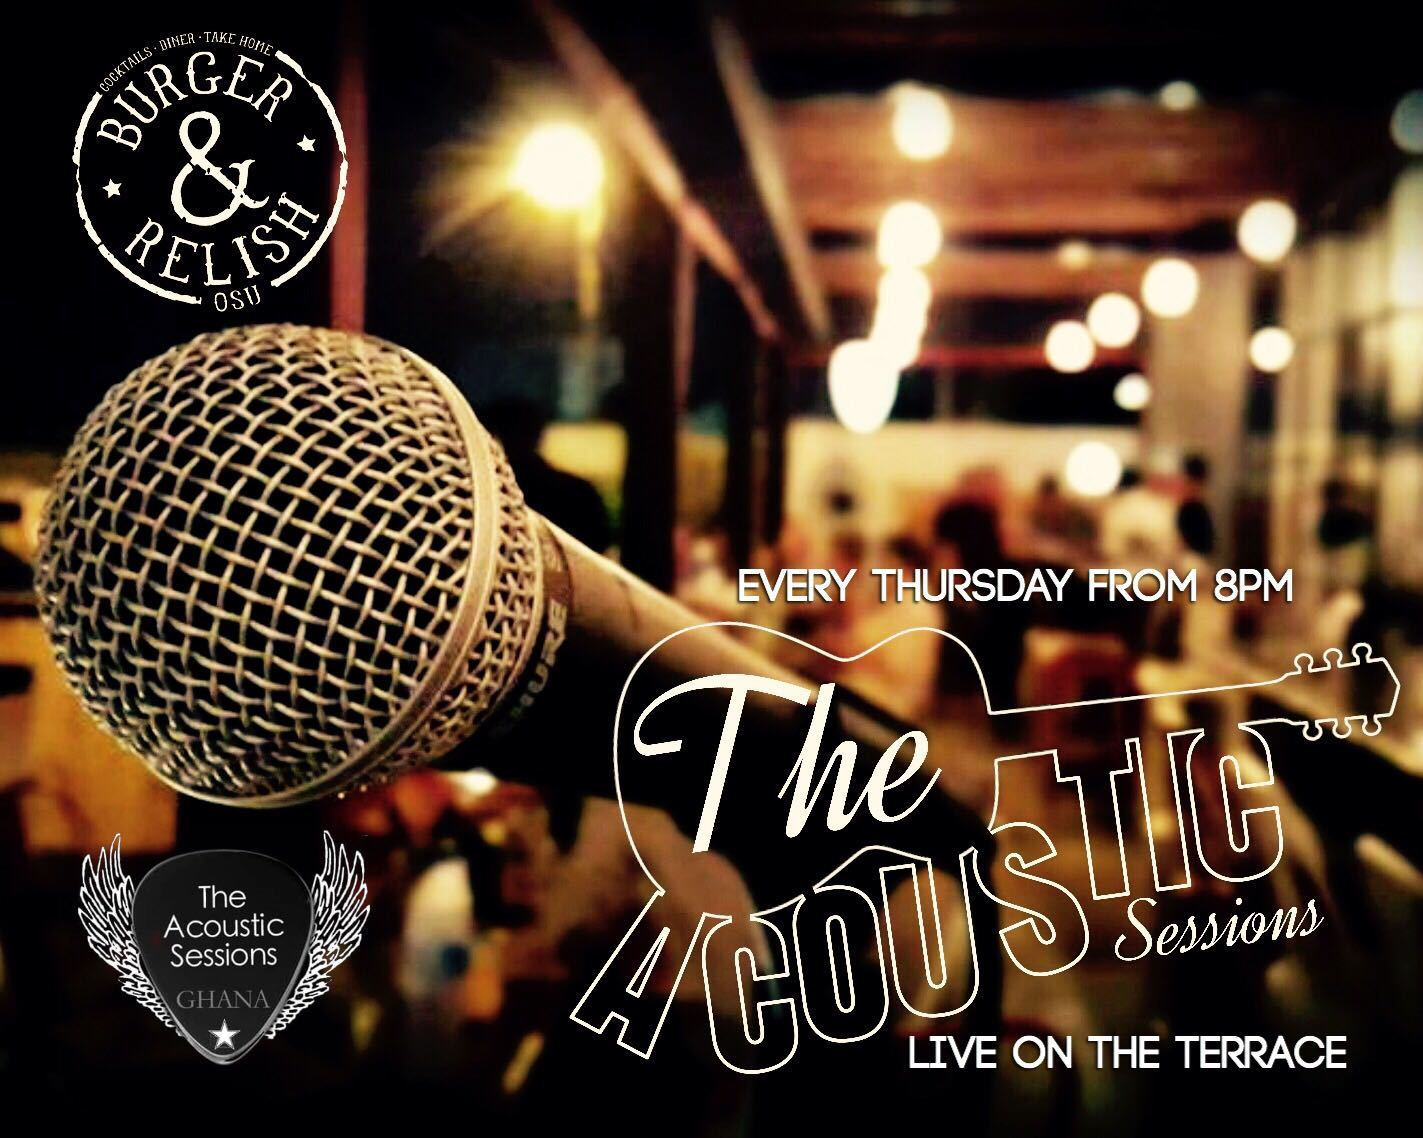 Thursday | The Acoustic Session at Burger & Relish